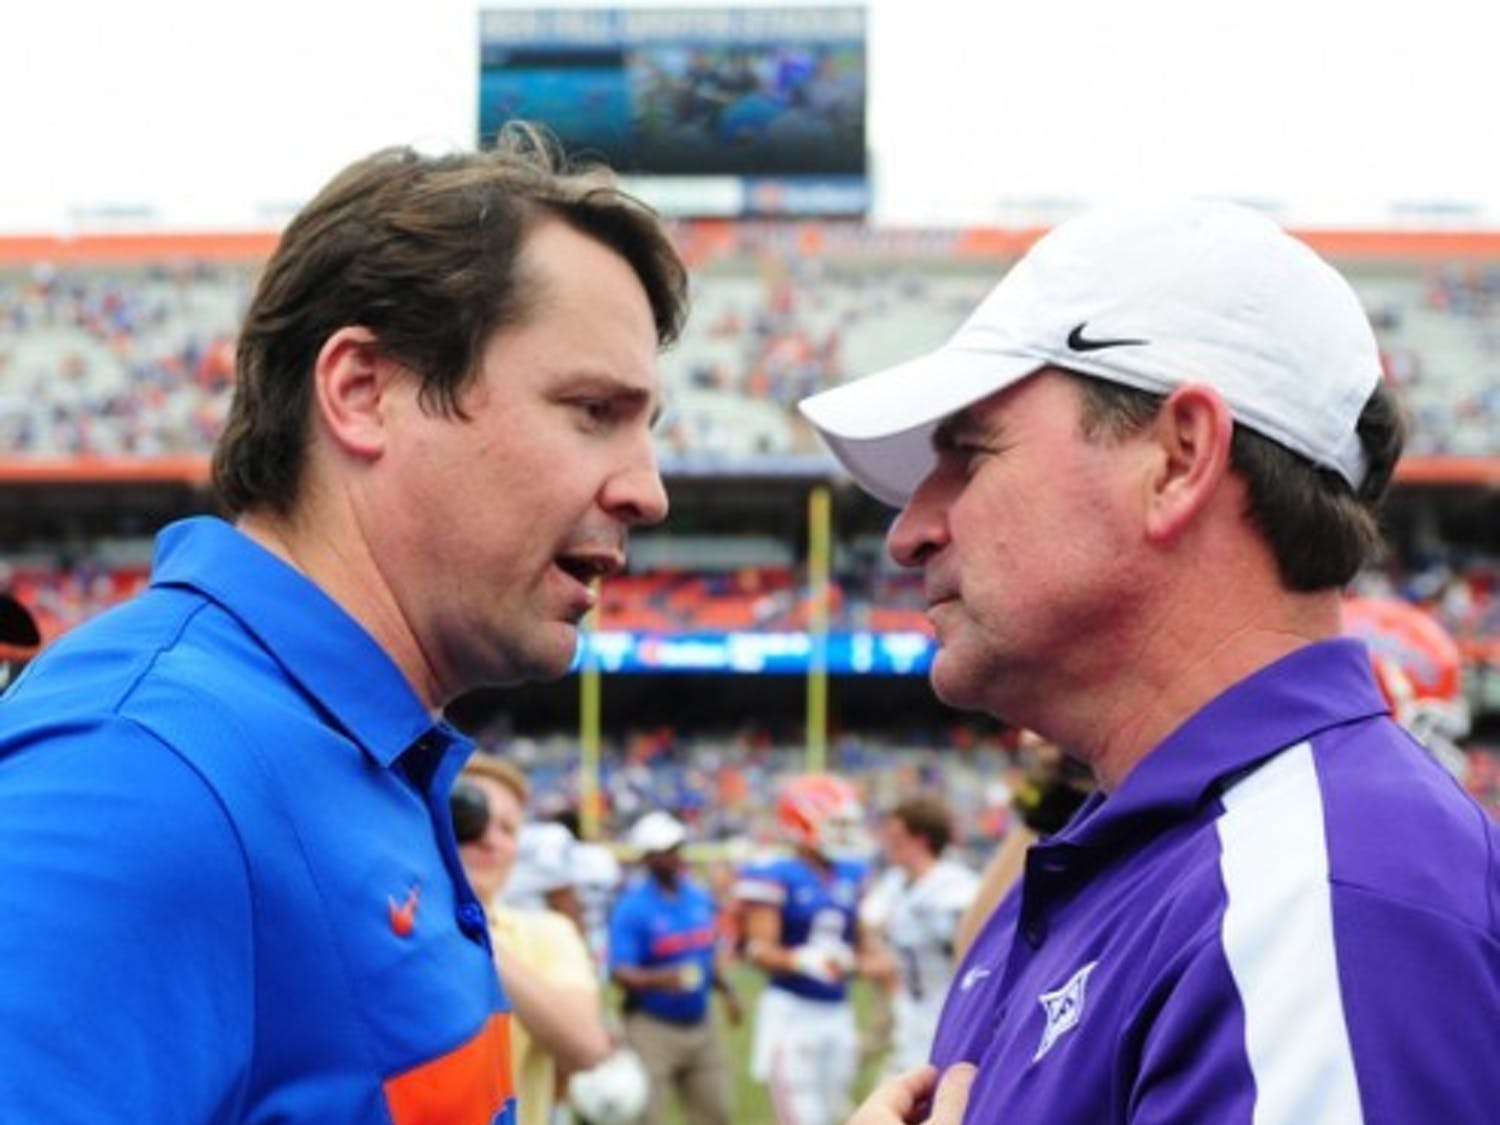 Florida coach Will Muschamp (left) said Furman coach Bruce Fowler (right) deserved credit for confusing the Gators' defense in Saturday's 54-32 win.